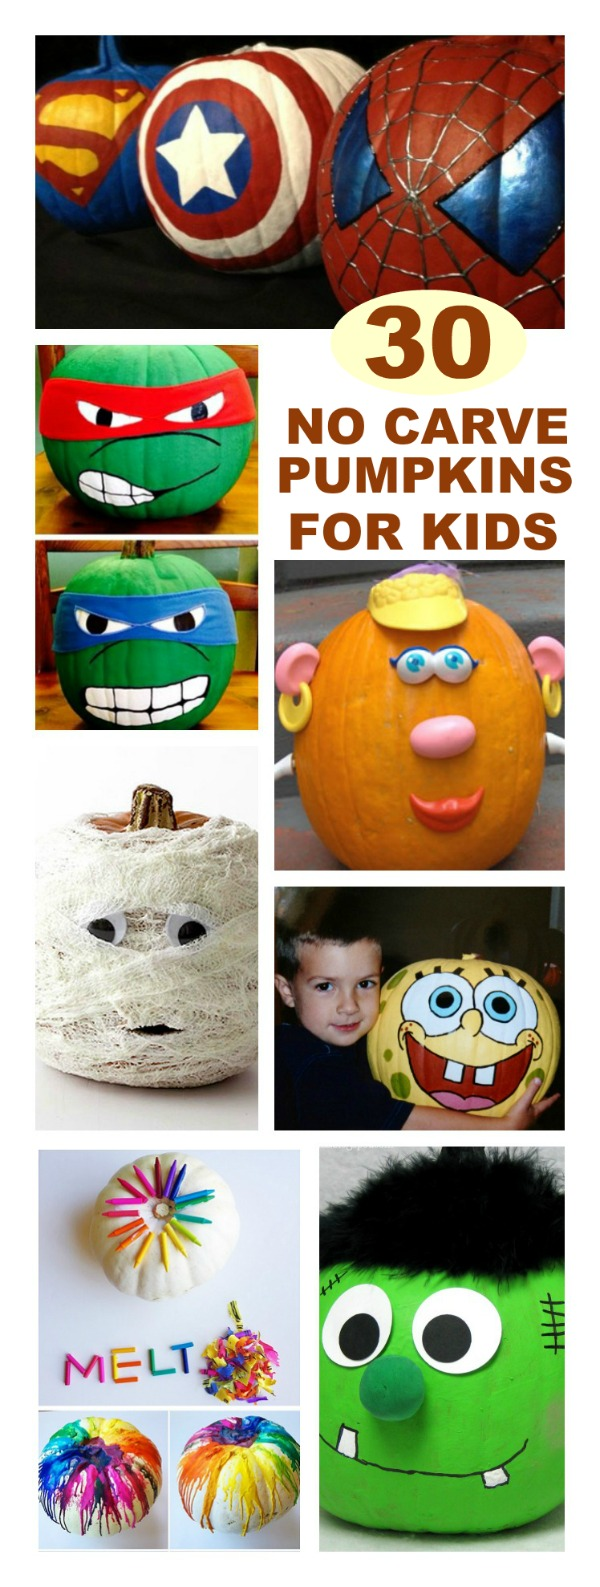 30 FUN WAYS FOR KIDS TO DECORATE PUMPKINS WITHOUT CARVING- awesome ideas here!